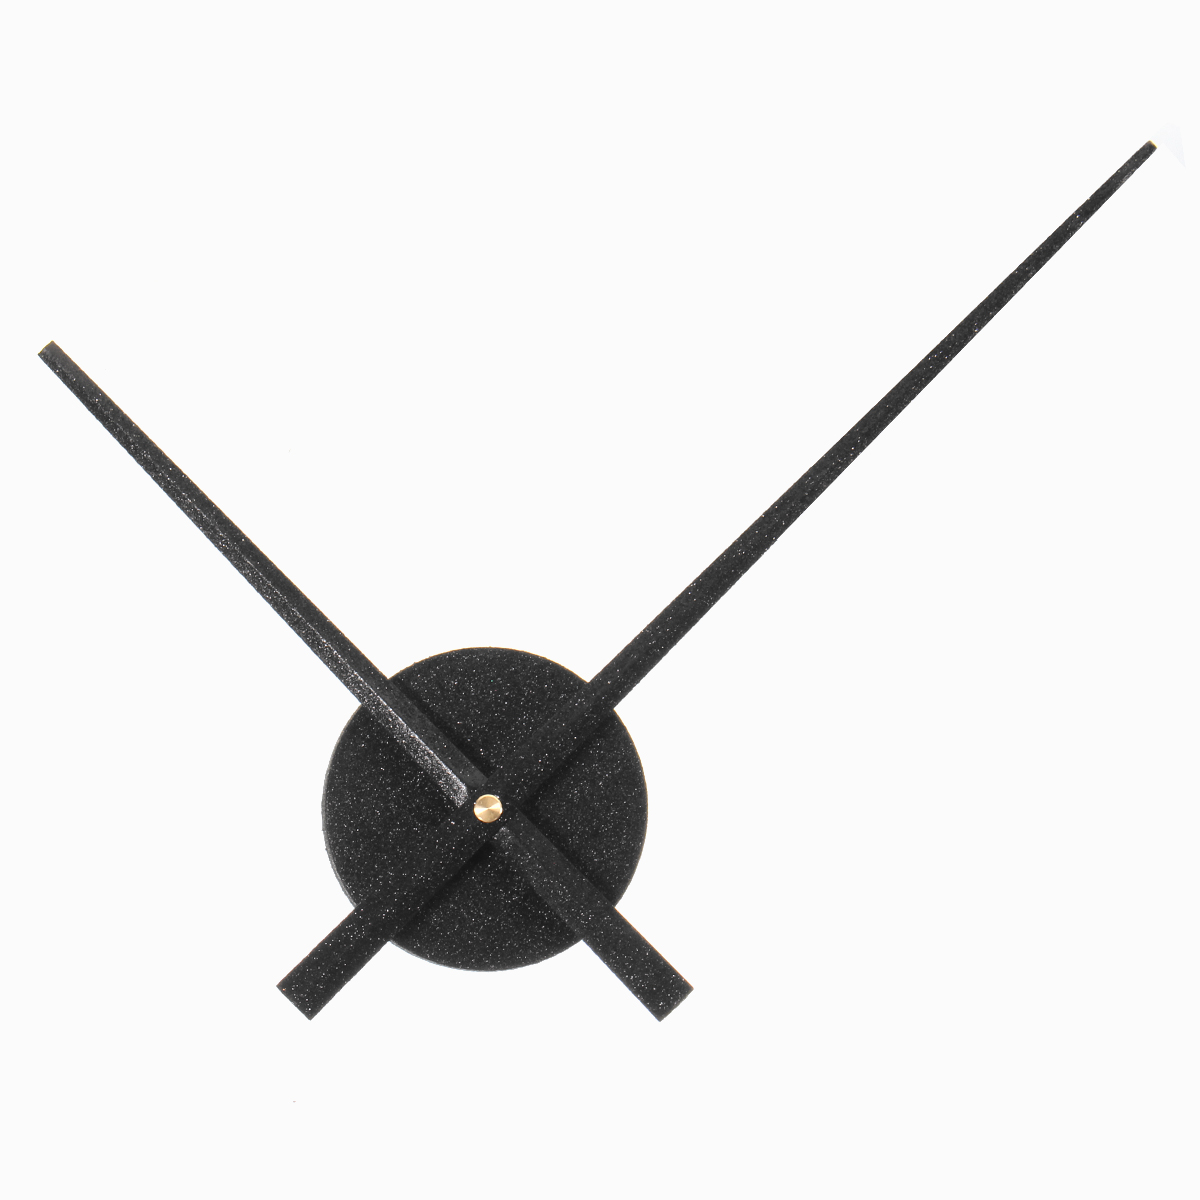 Replacement DIY Quartz Clock Movement Repair Part With Hands Fittings Kit (Eachine1) Salem for all